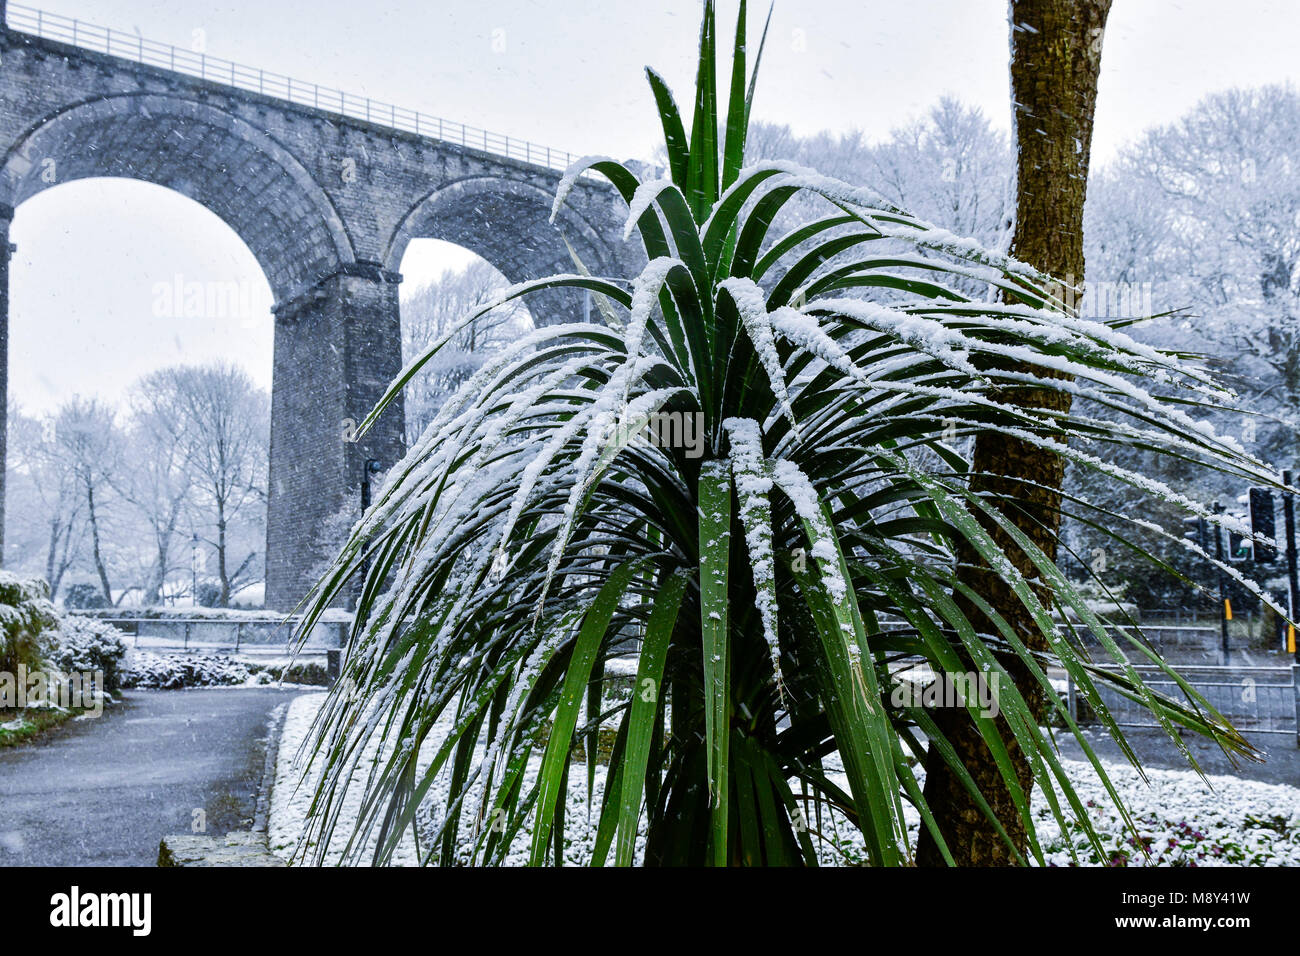 Unusal weather conditions in Cornwall with snow falling over Trenance Gardens in Newquay Cornwall. - Stock Image